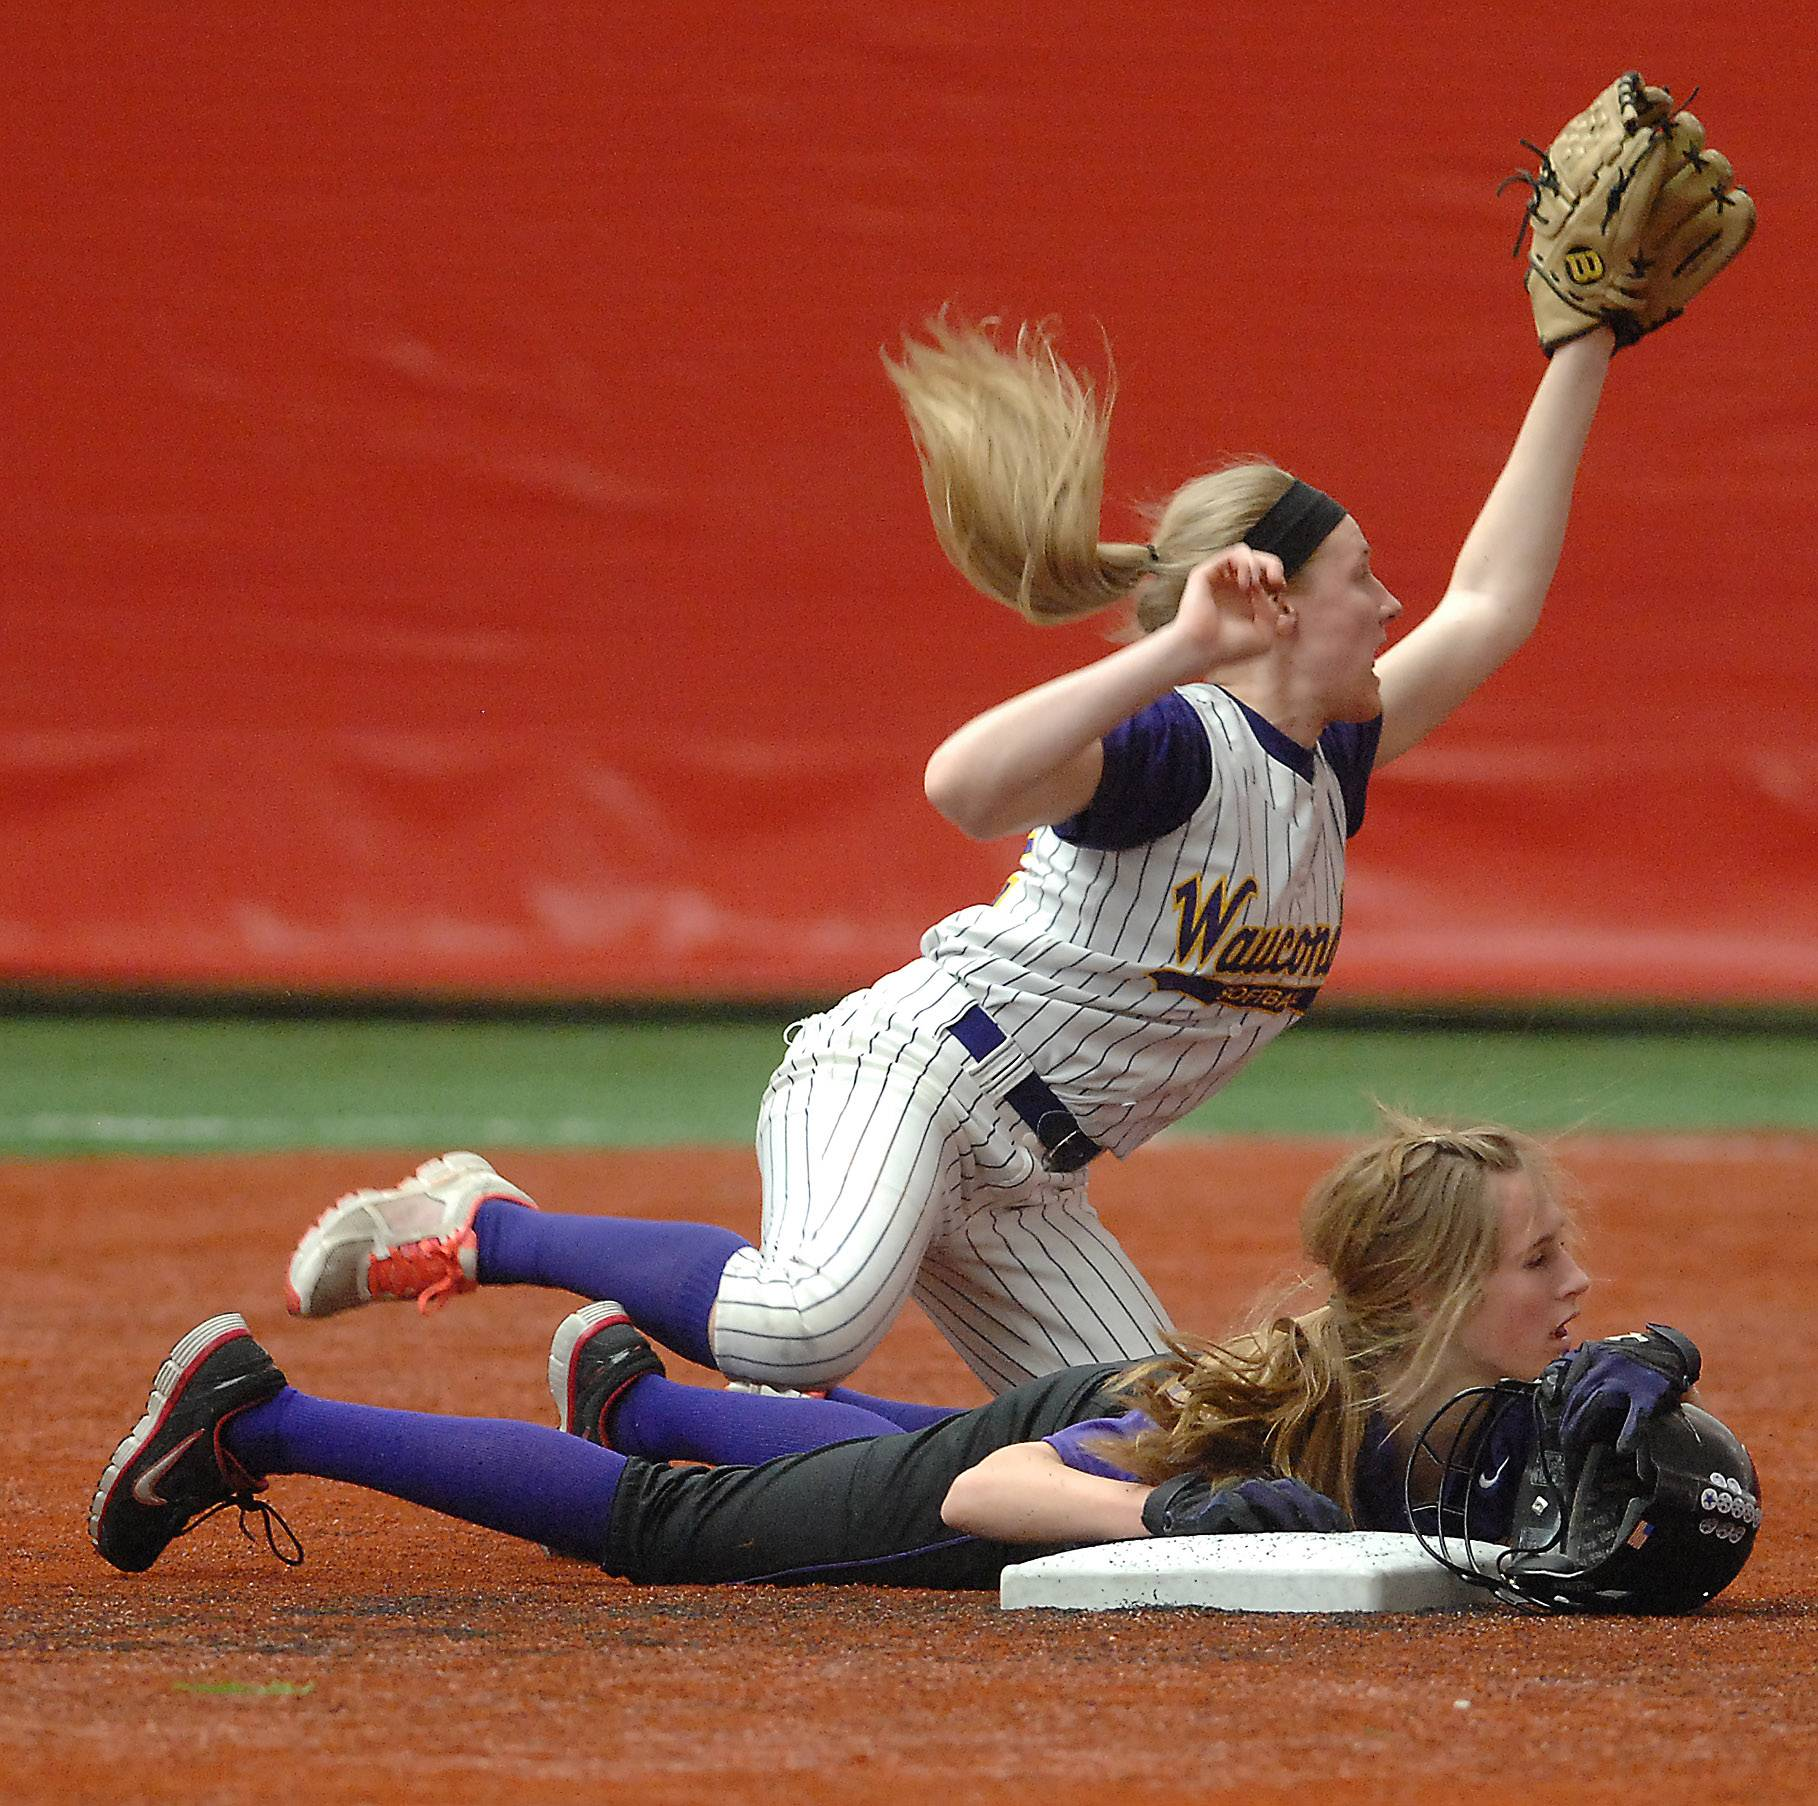 Wauconda's Jenna Heck tumbles over Hampshire's Haley Widmayer as she slides safely into second during Monday's softball game at The Dome in Rosemont.